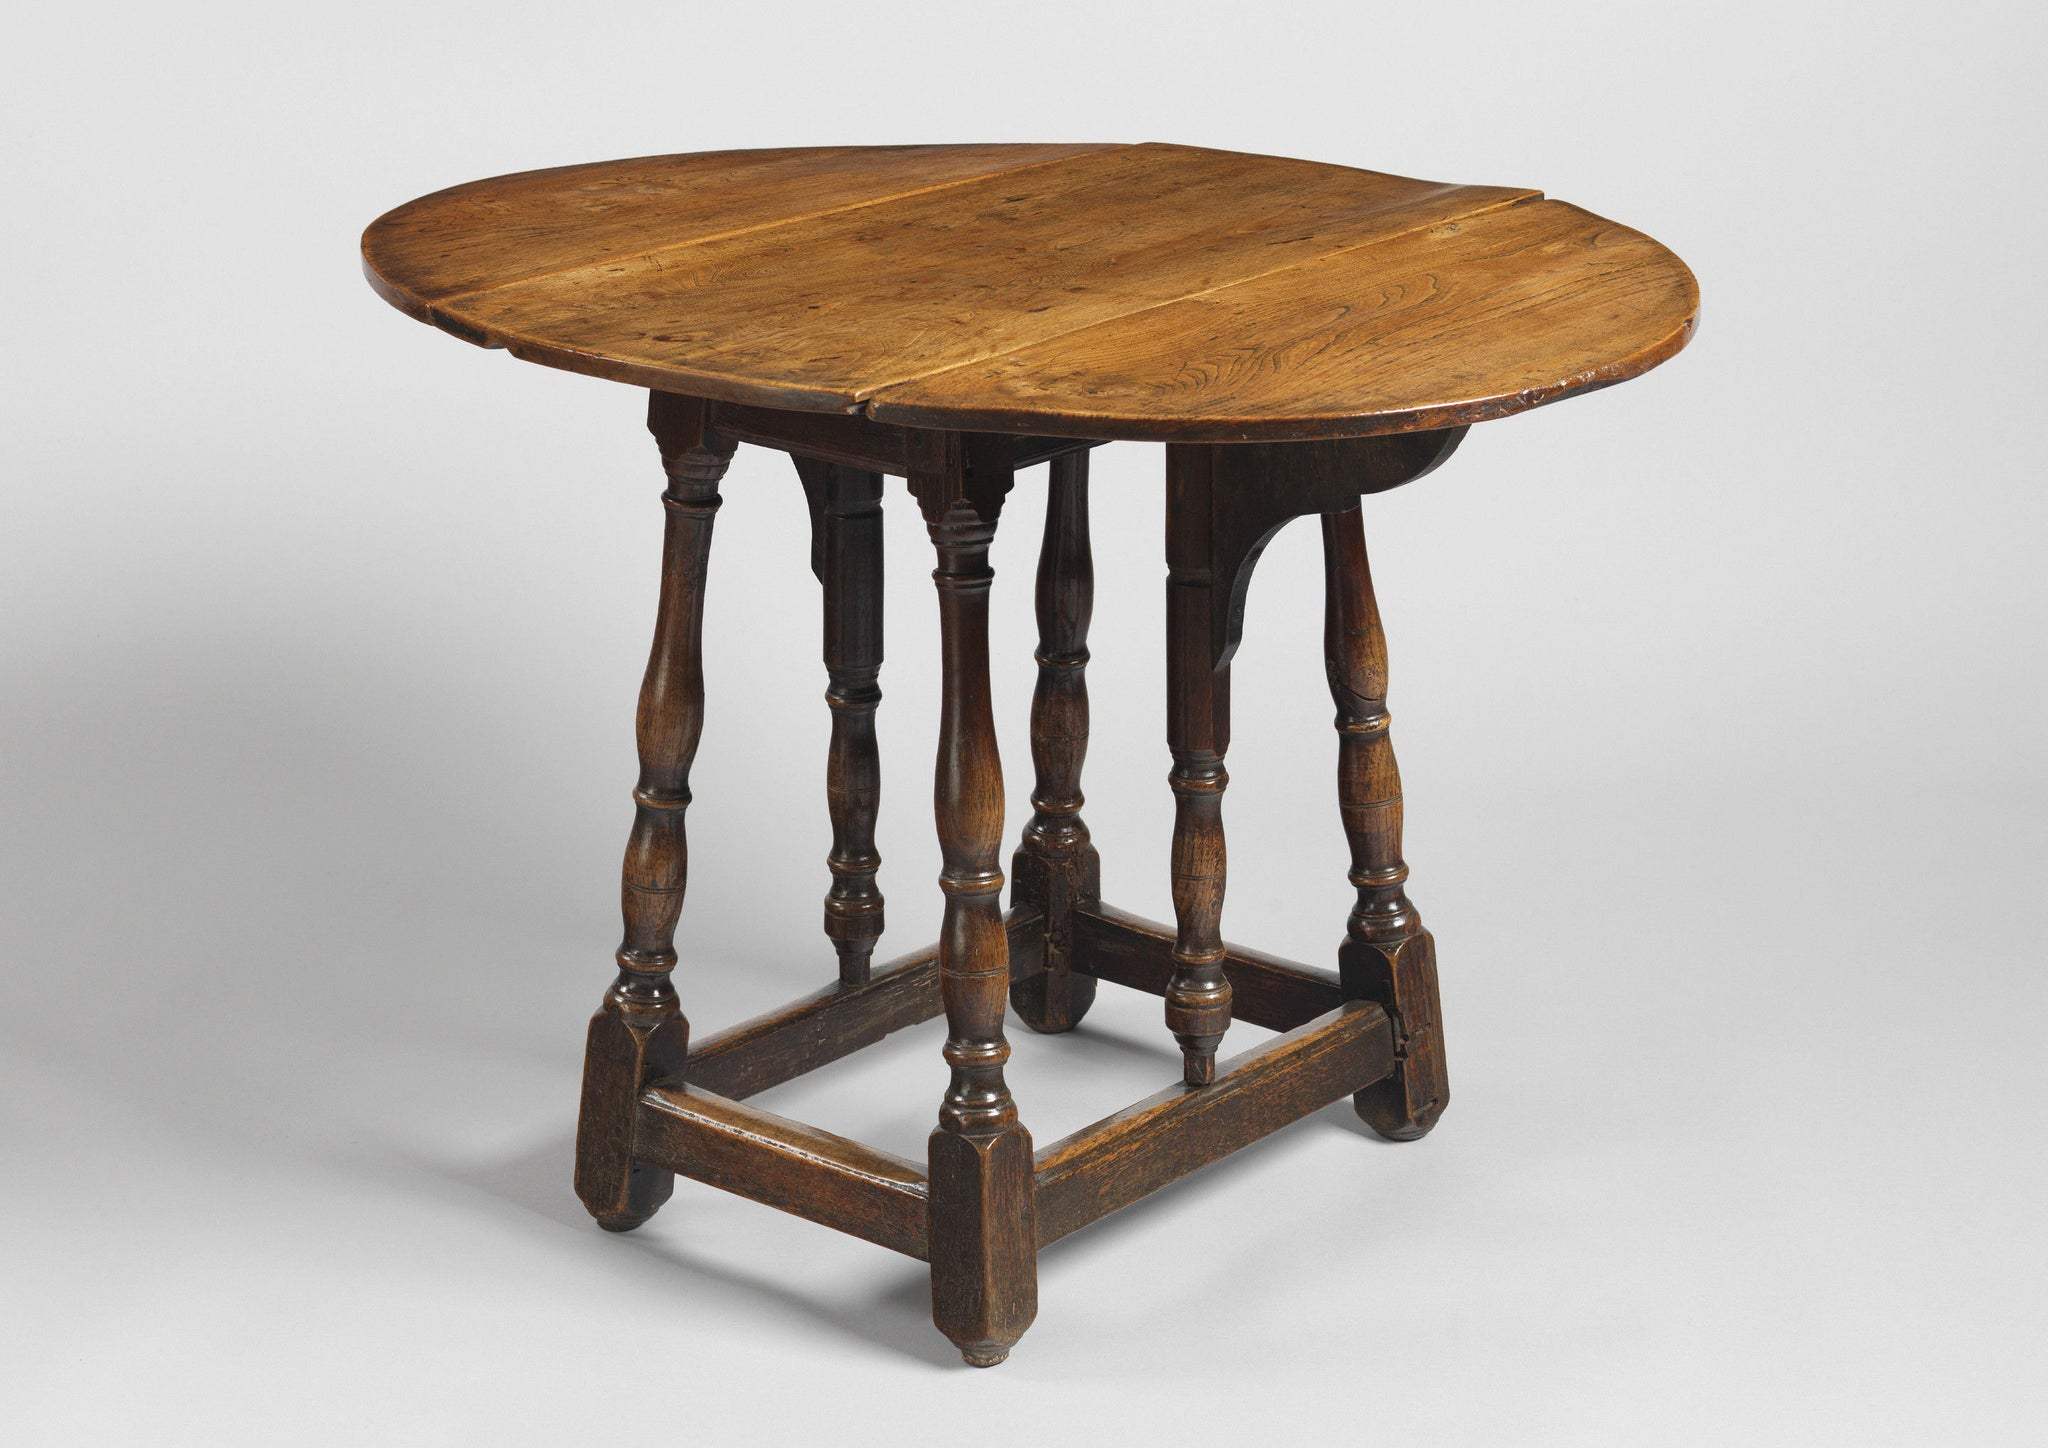 Unusual Butterfly Action Oval Drop Leaf Centre Table